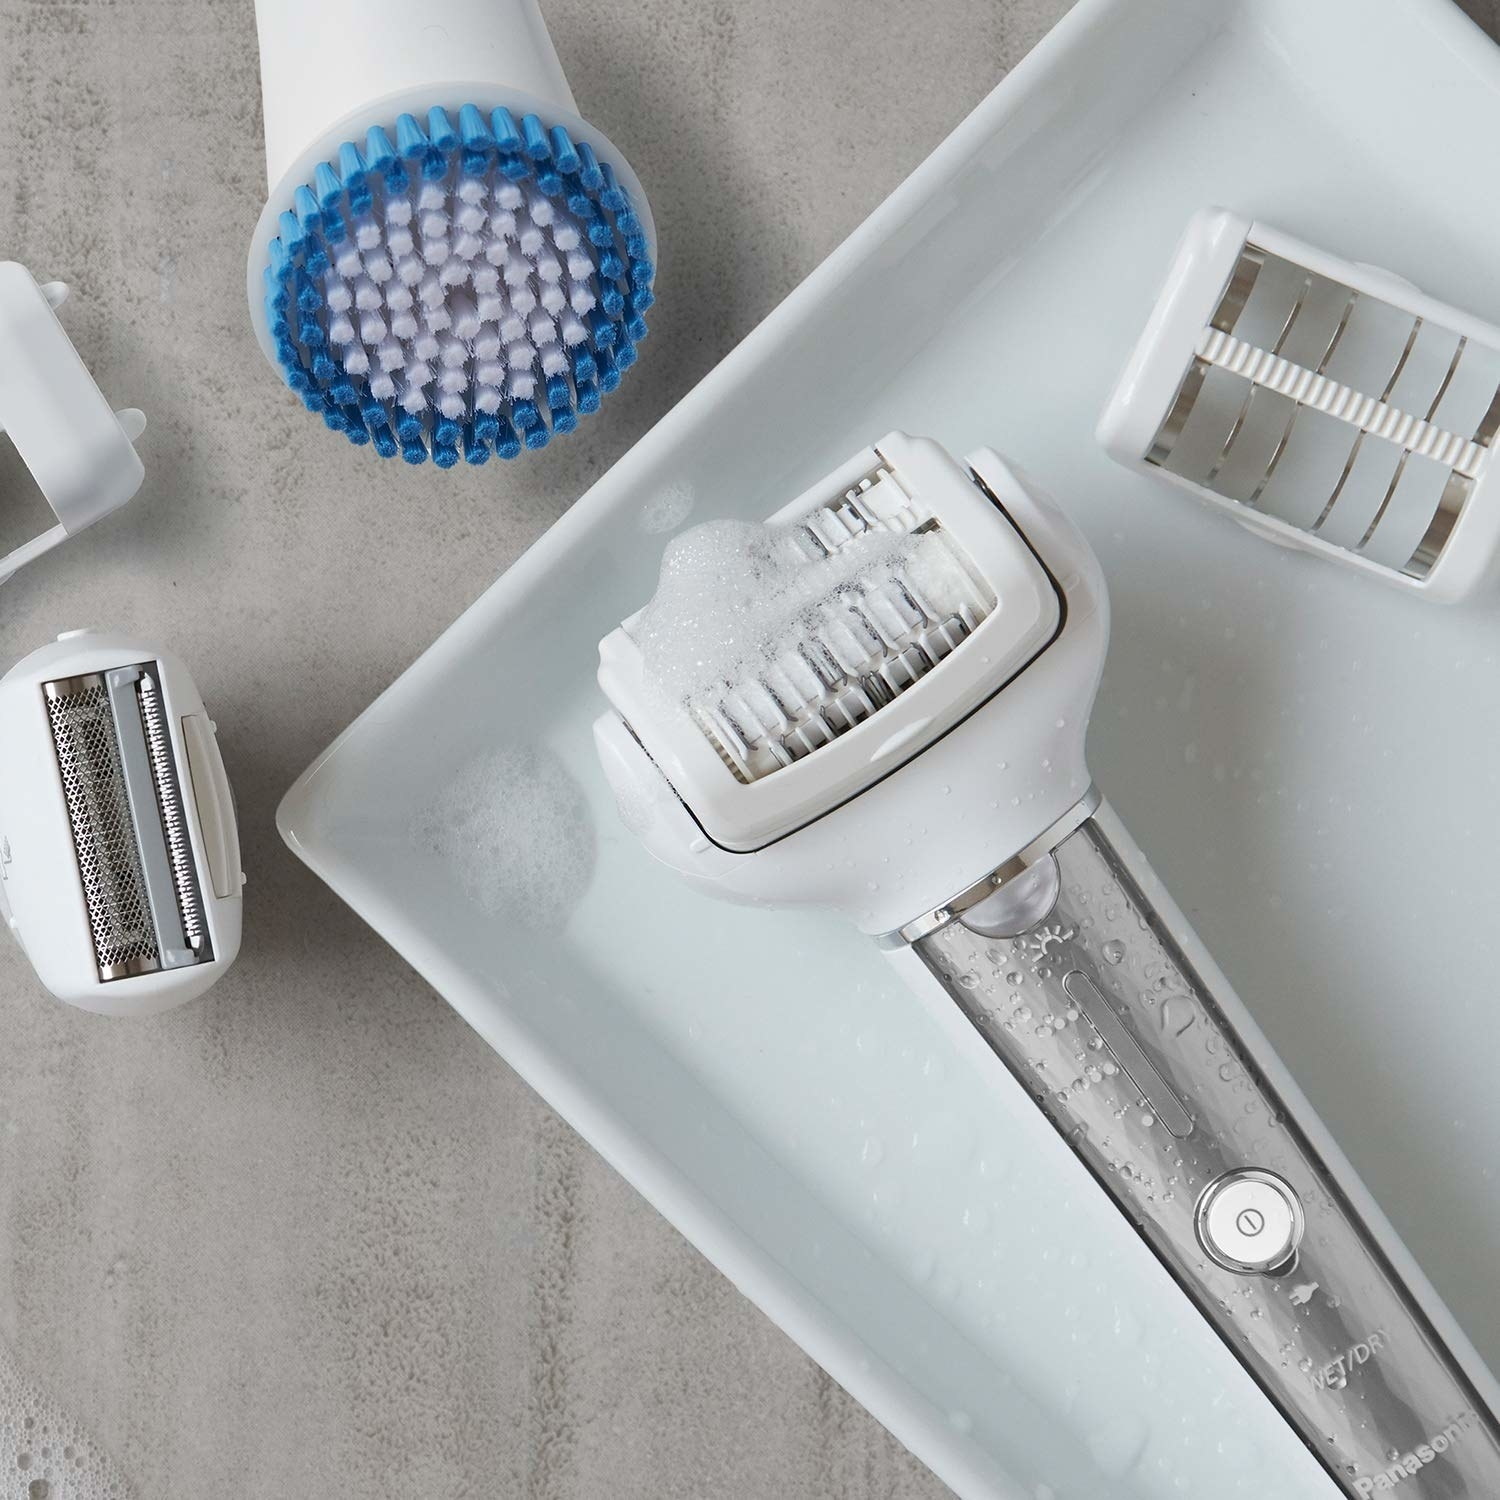 the epilator with a silver handle